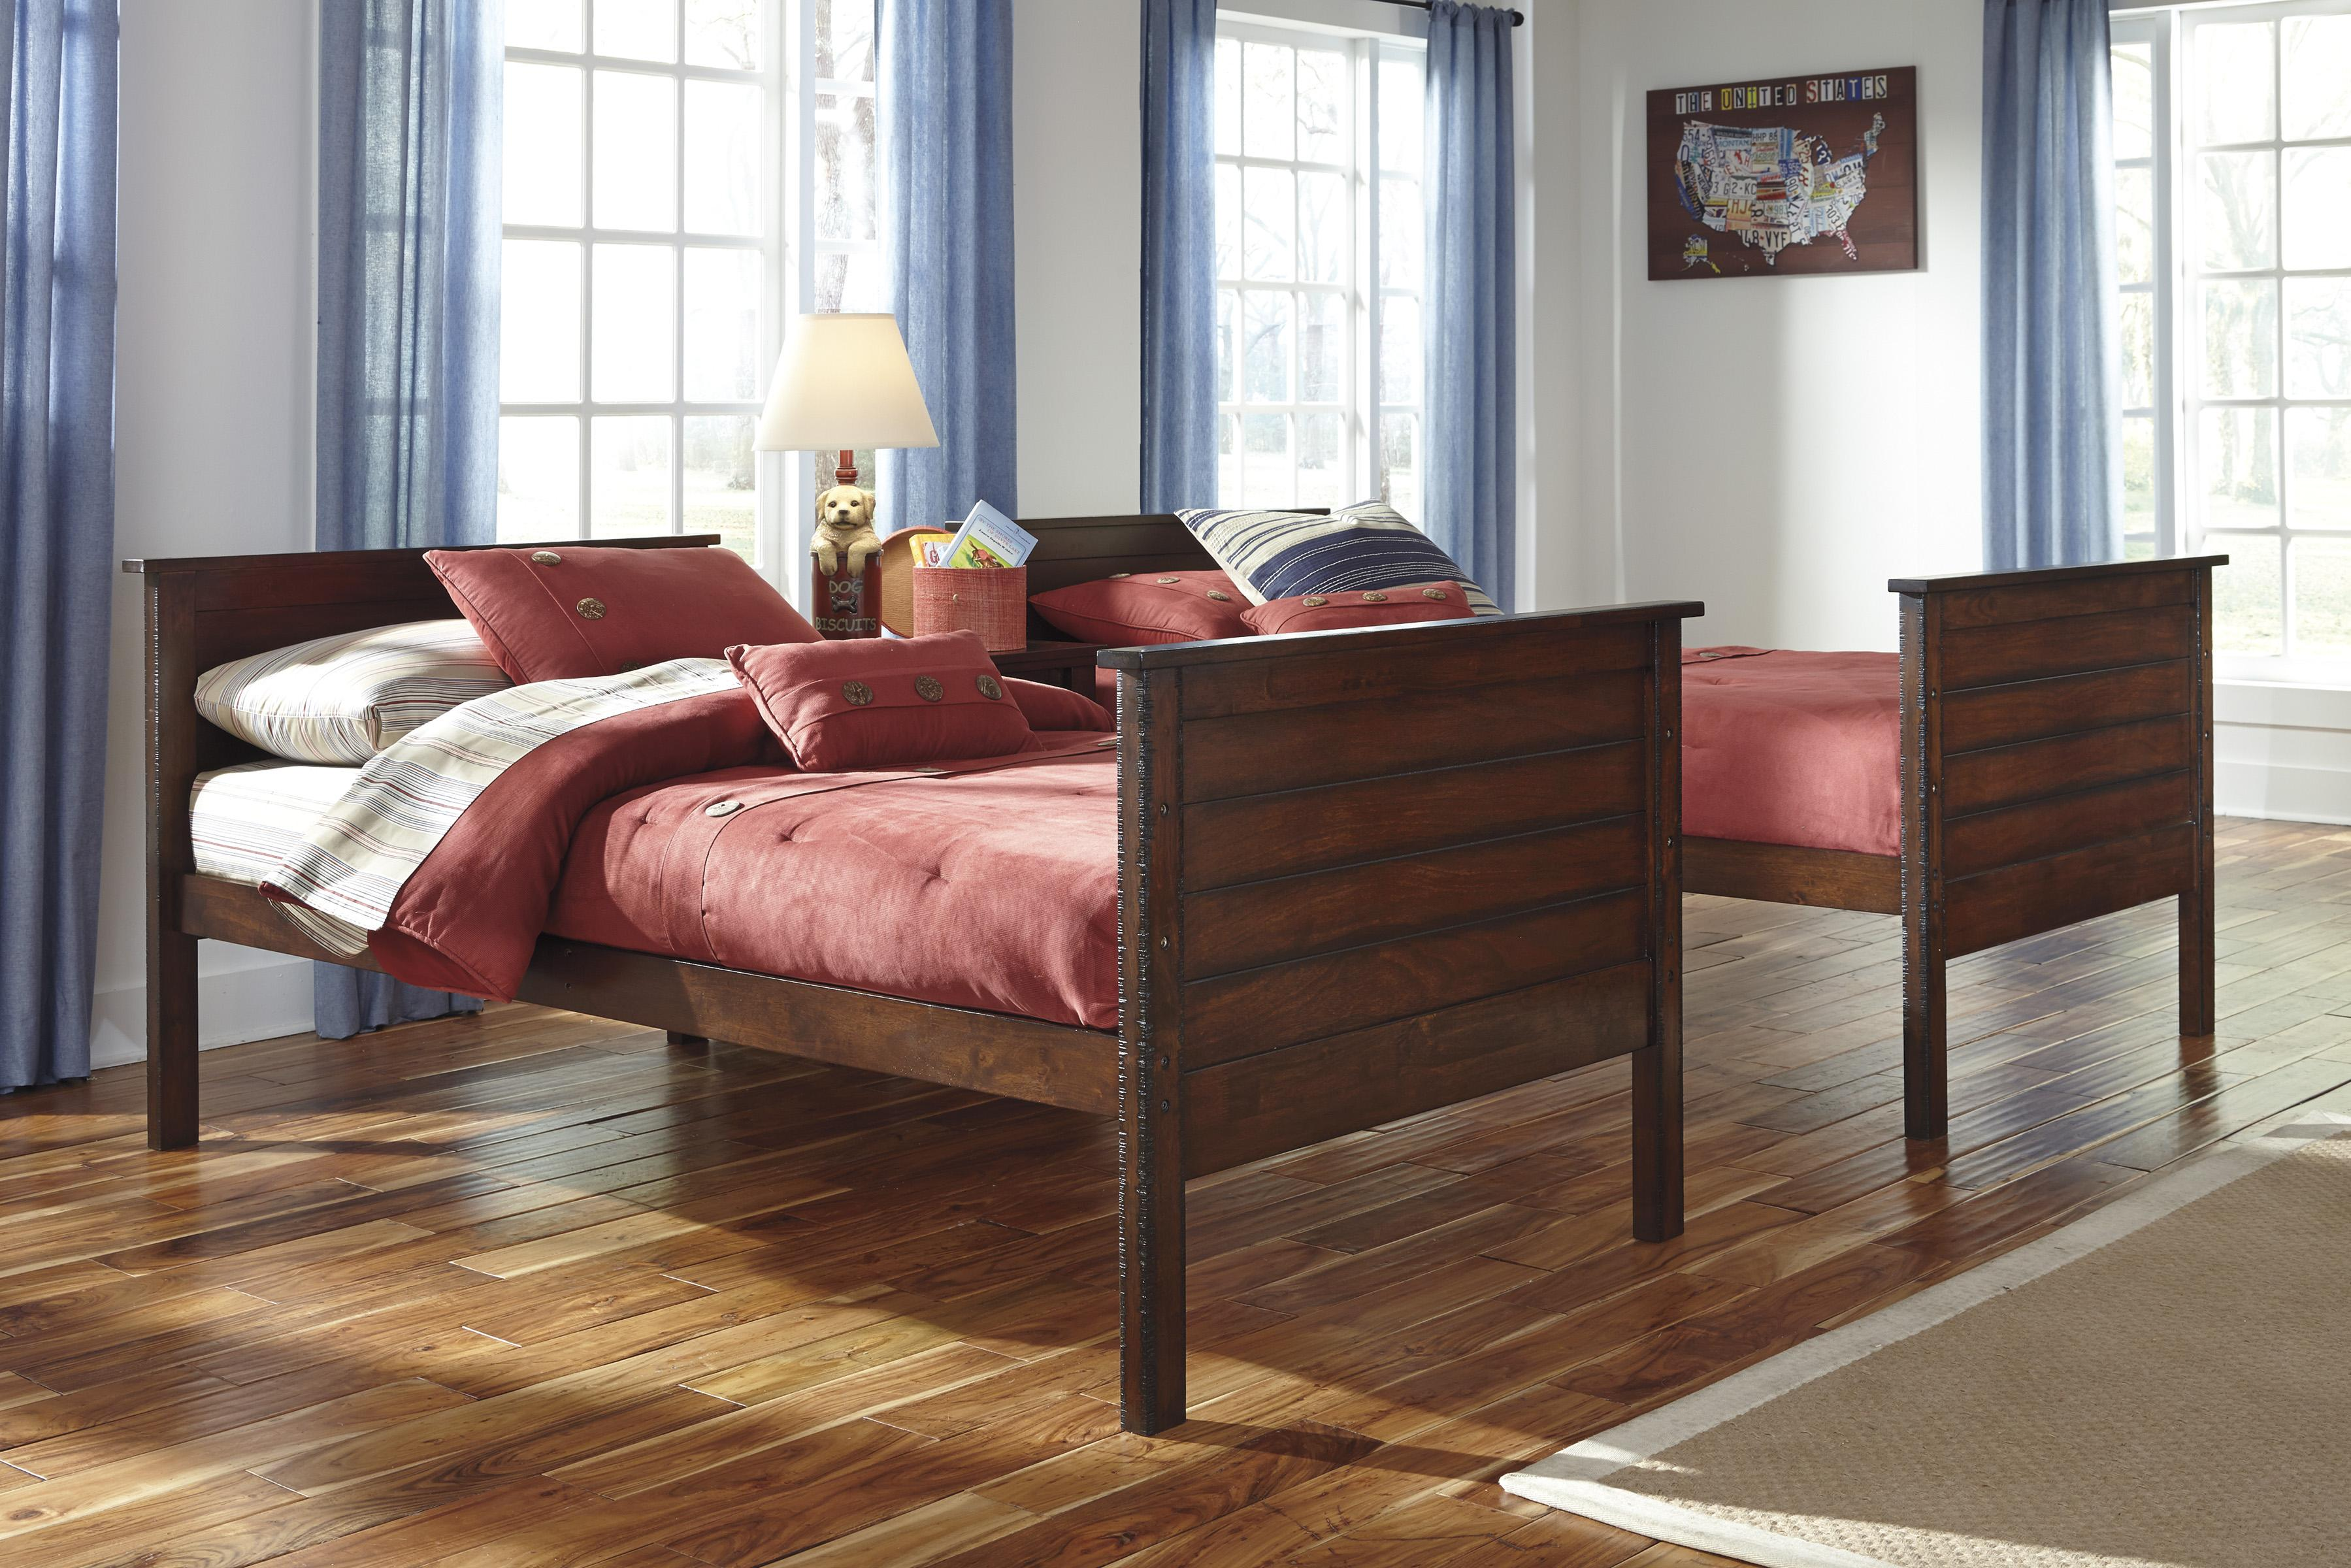 Signature Design By Ashley Ladiville Rustic Twin Twin Bunk Bed Becker Furniture World Bunk Bed